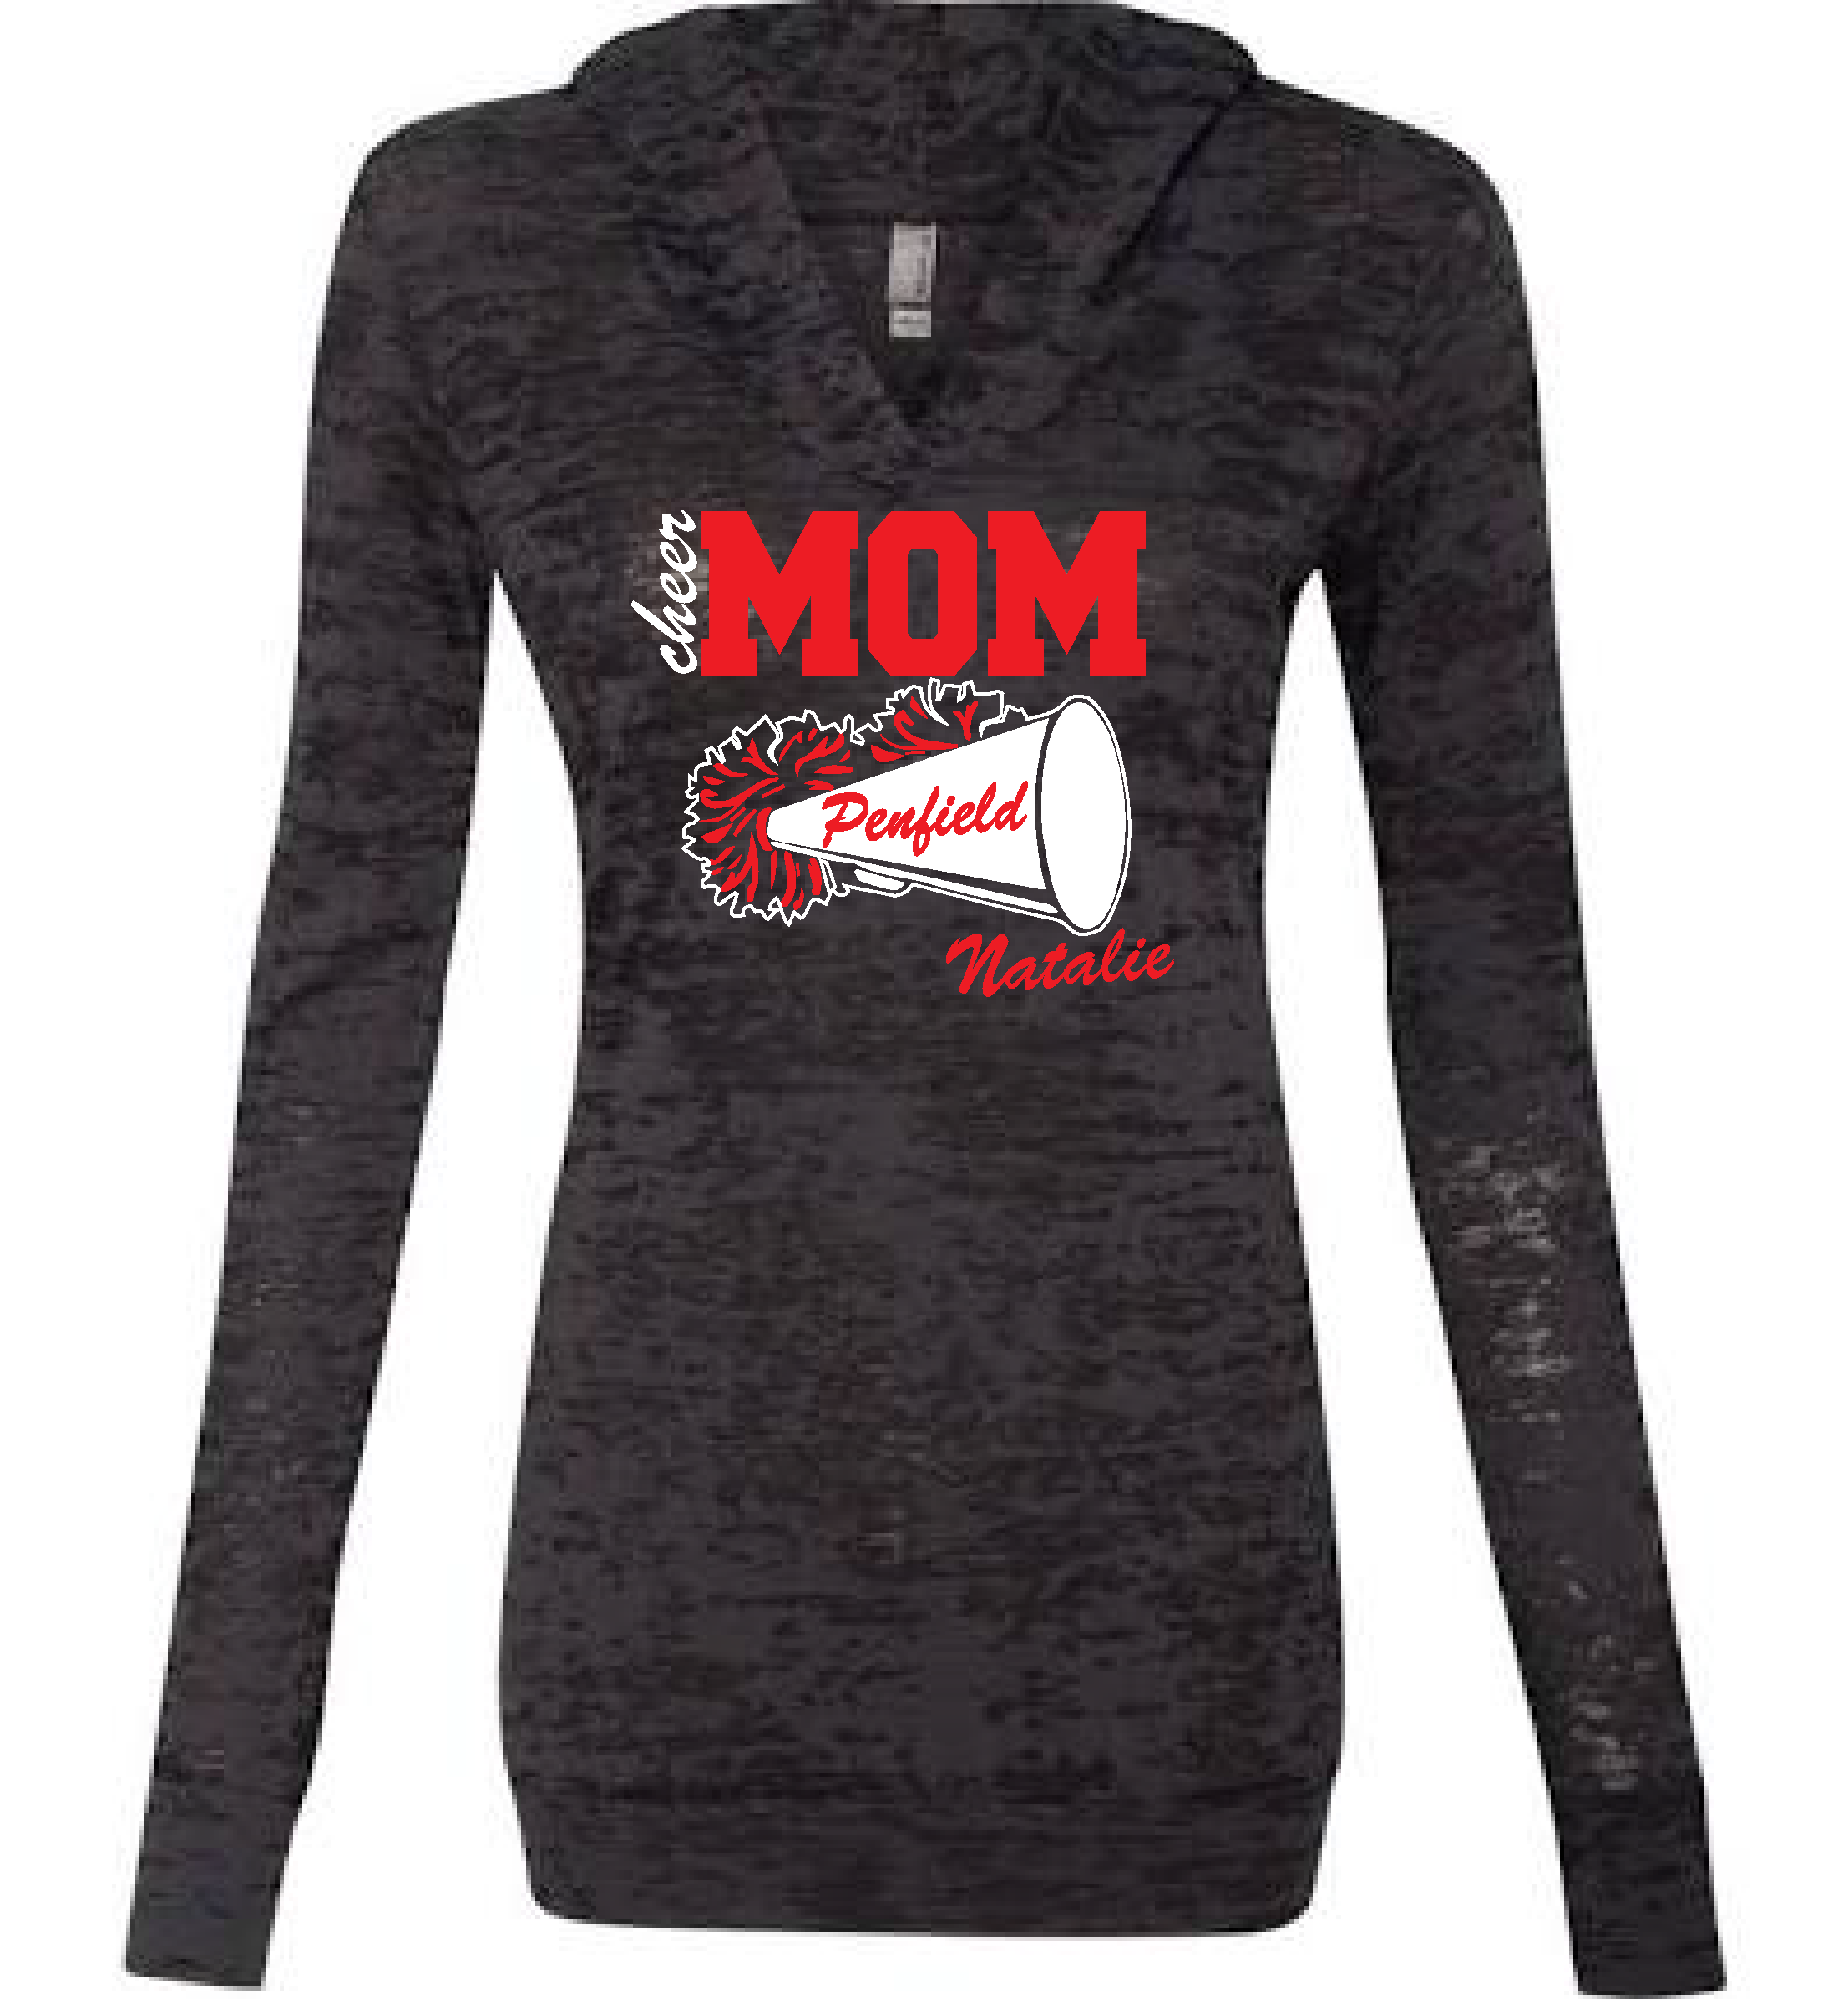 Penfield Cheer MOM Burnout hoodie